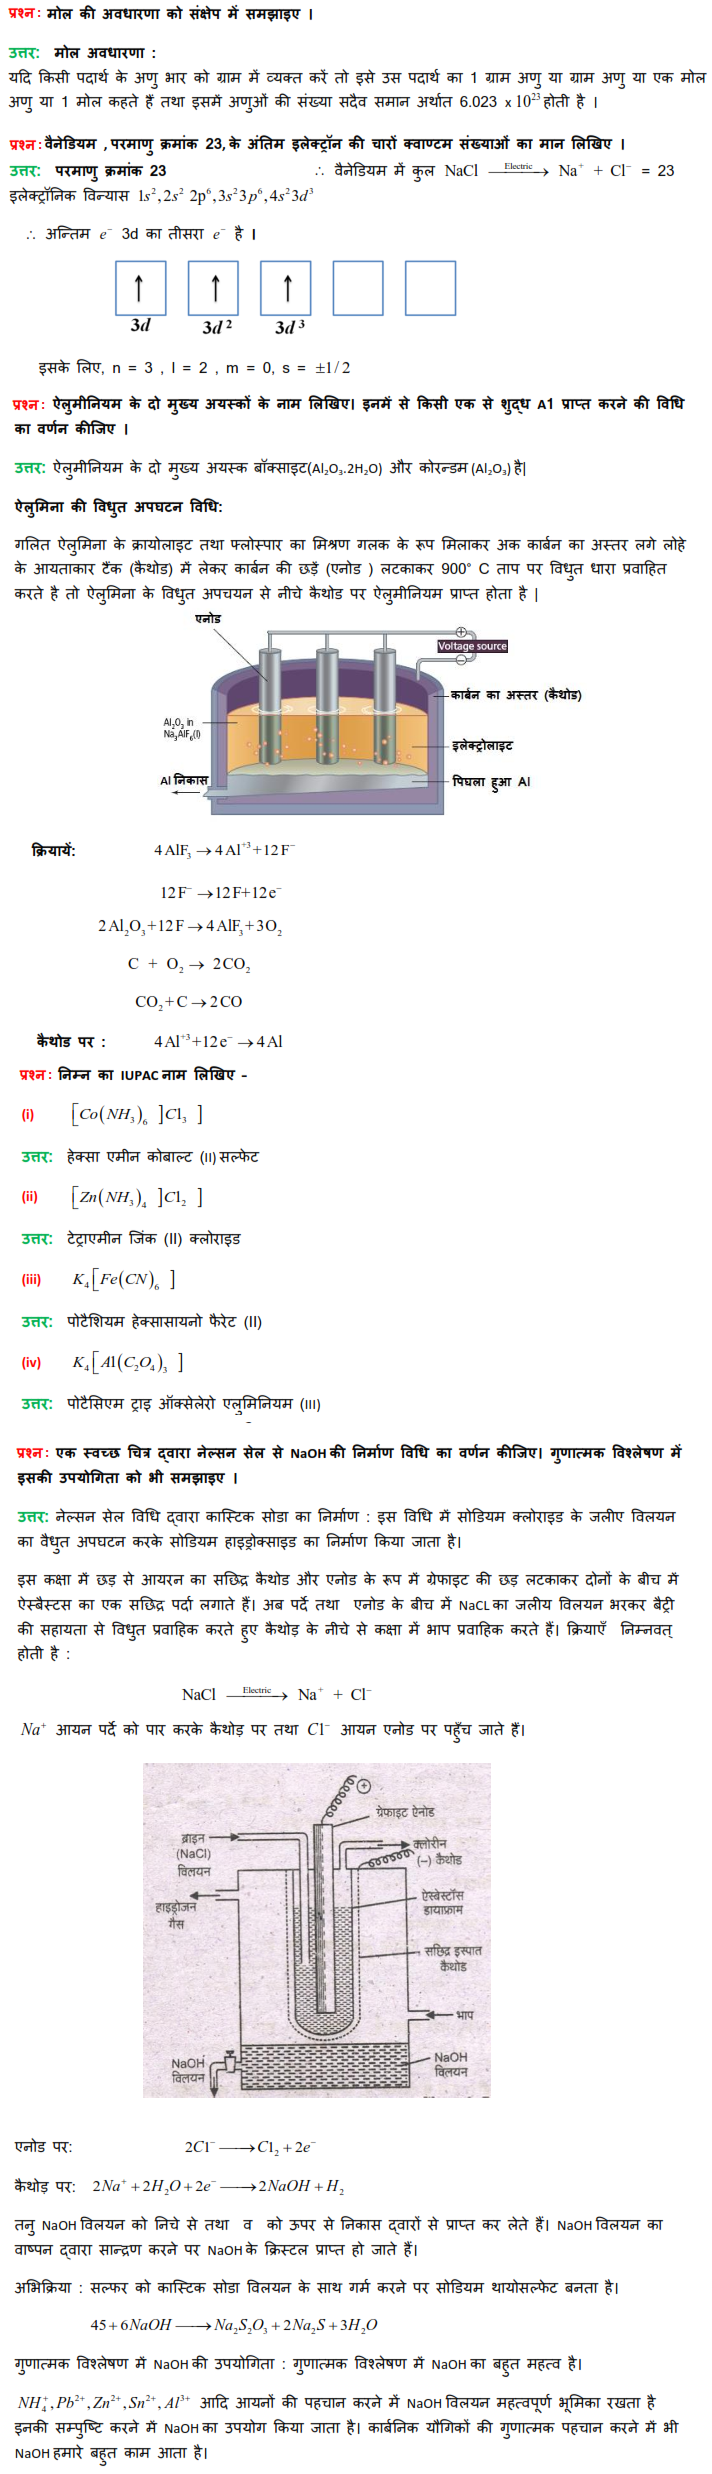 Up board class 12th chemistry first solved question paper set 1 up board class 12th chemistry first solved question paper set 1 2014 fandeluxe Gallery